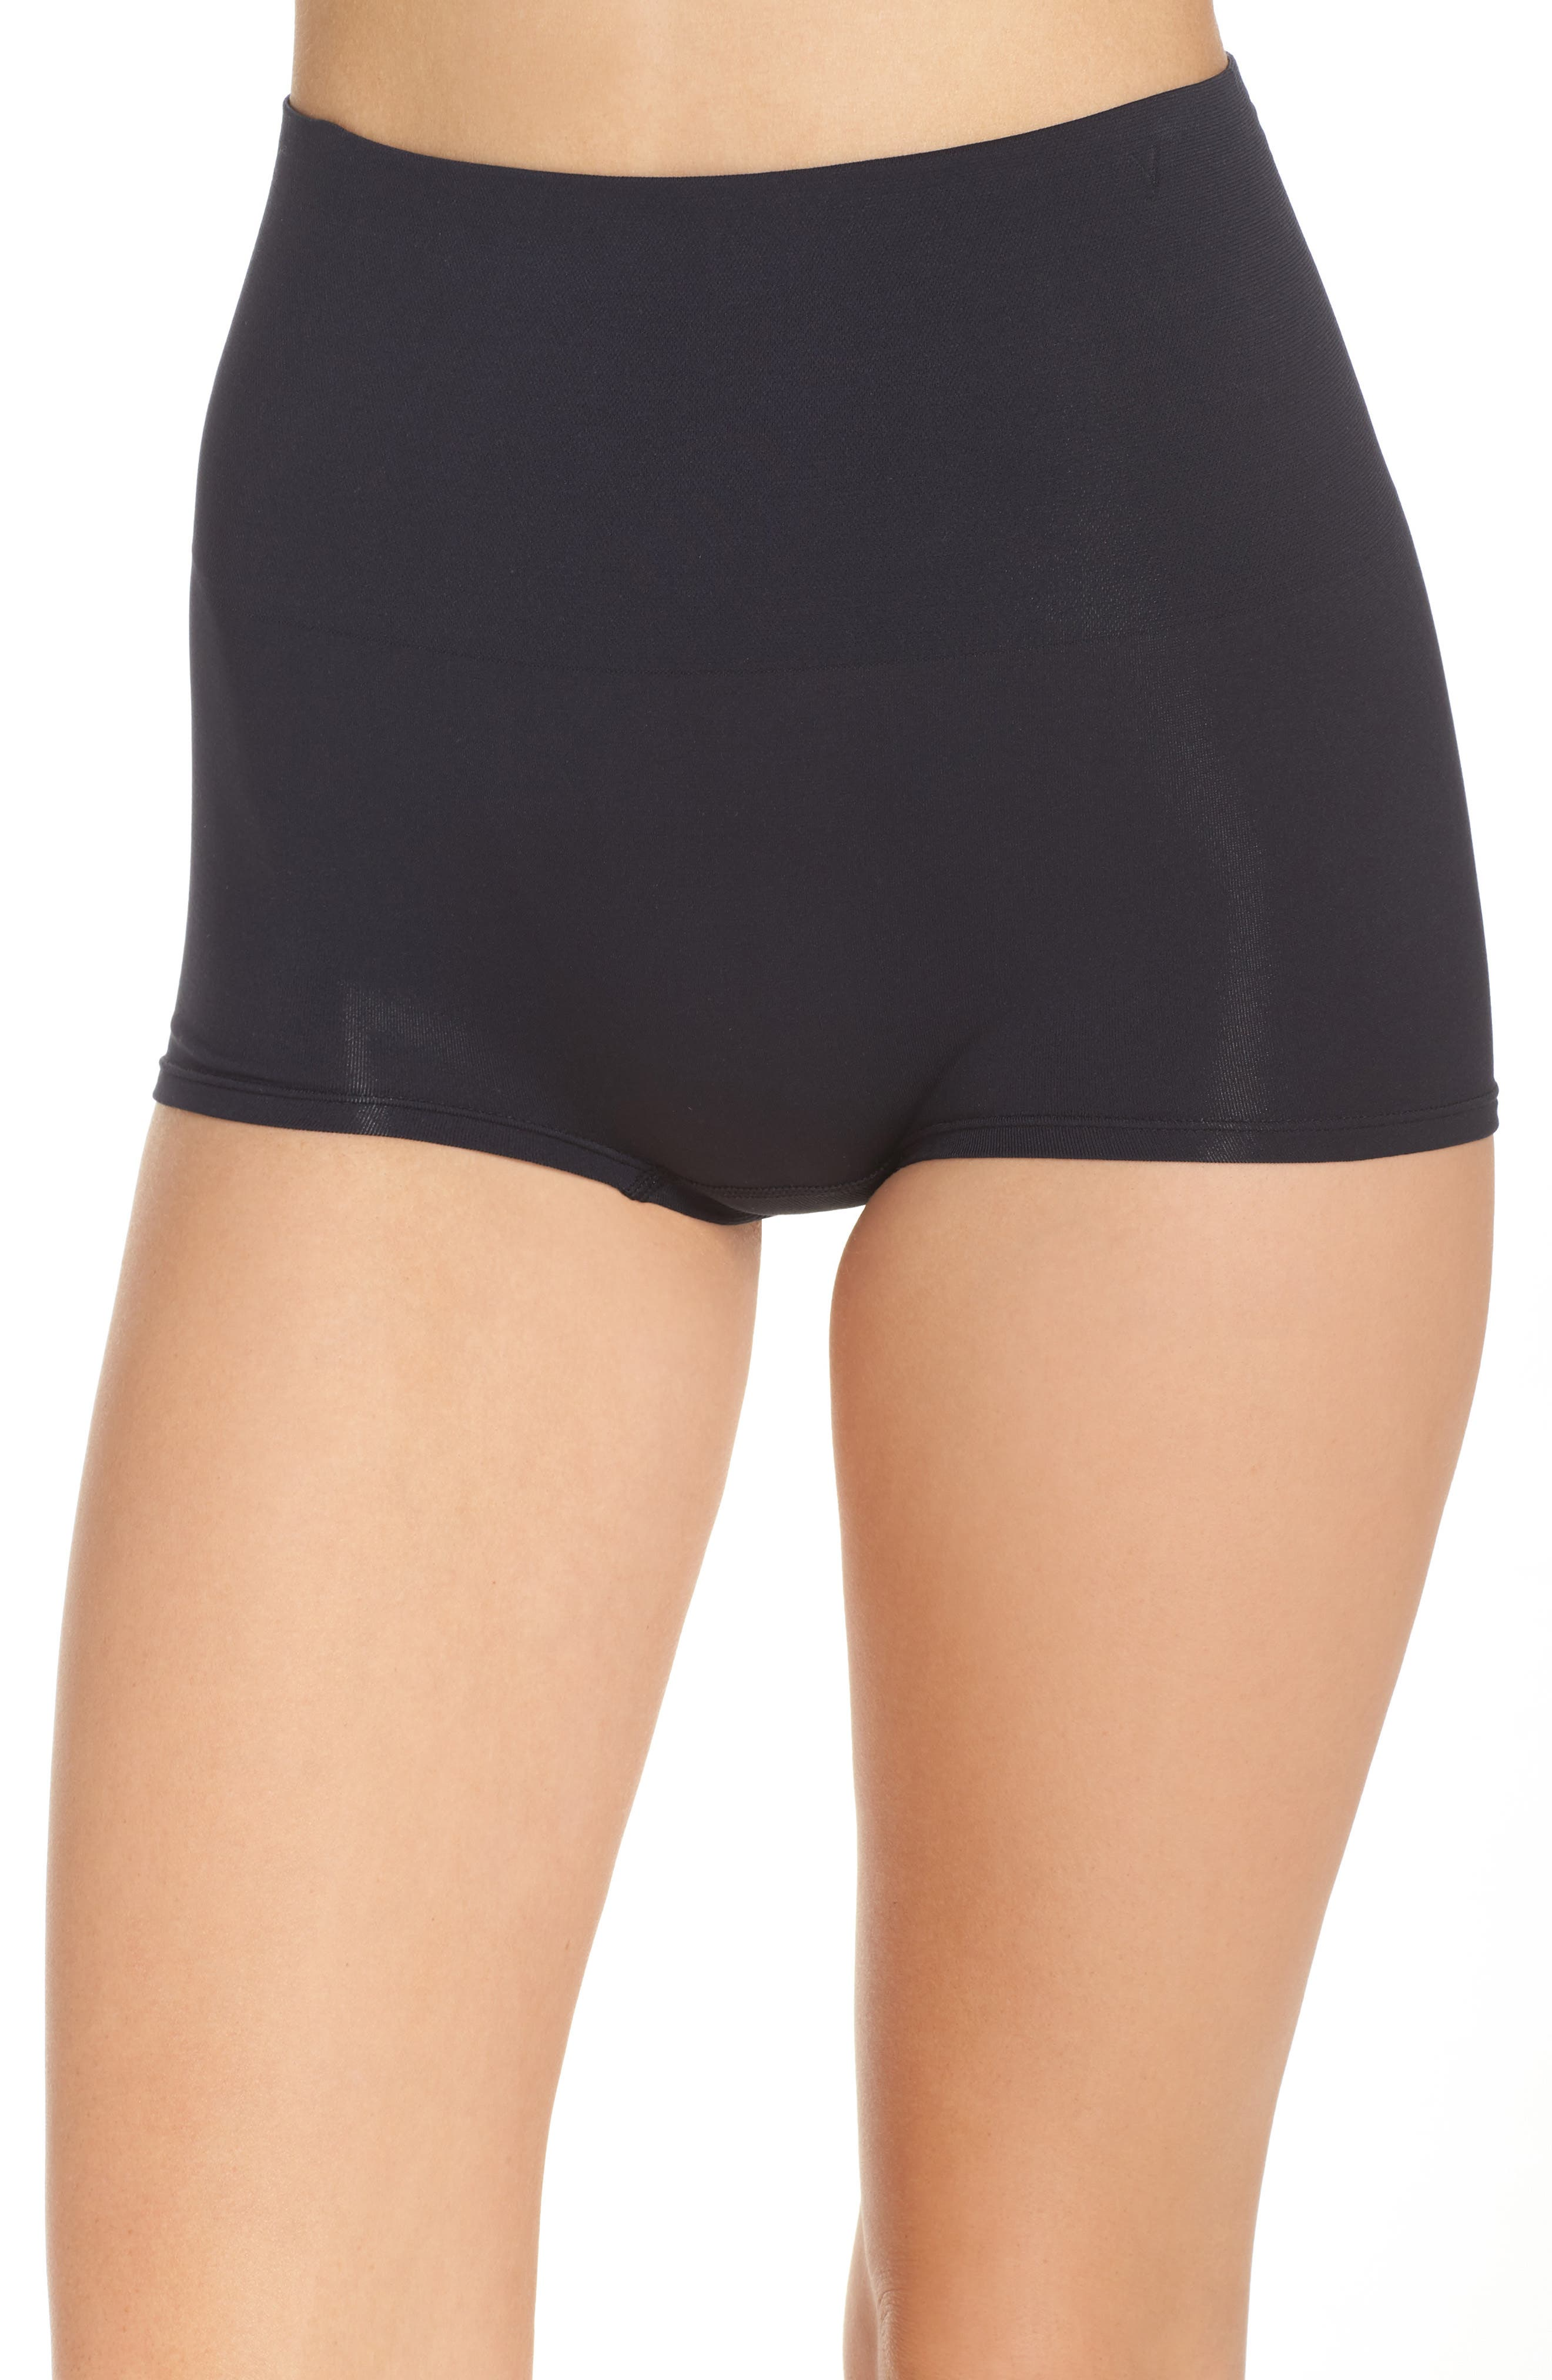 Ultralite Seamless Shaping Girlshorts,                         Main,                         color, Black